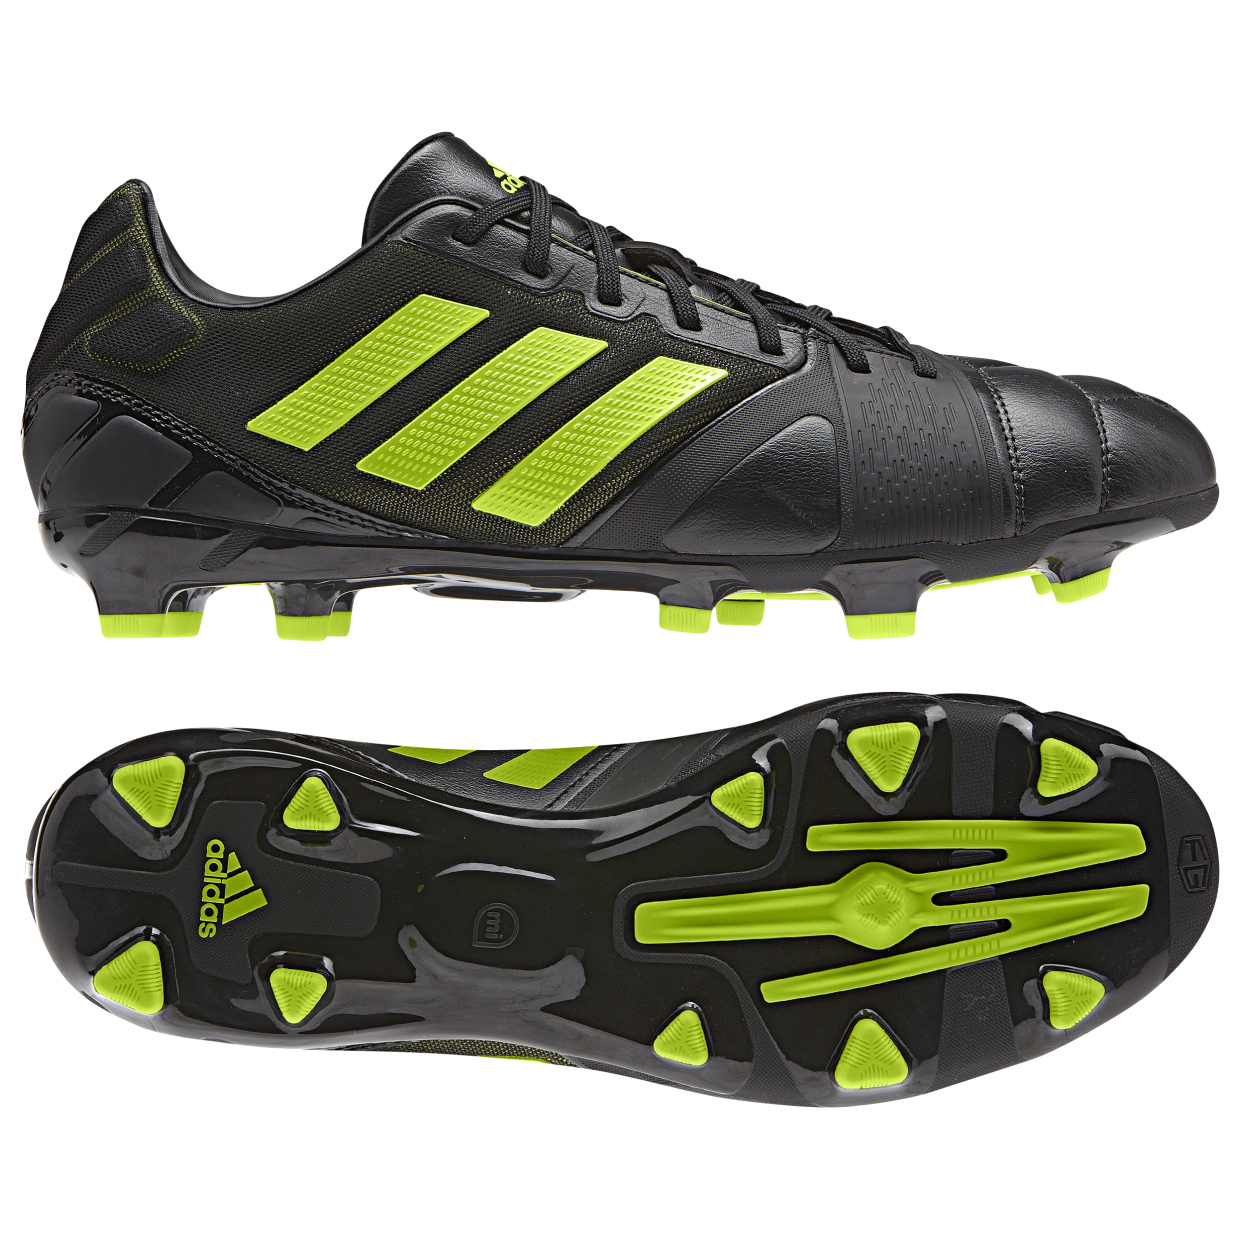 adidas Nitrocharge 2.0 TRX Firm Ground Football Boots Black